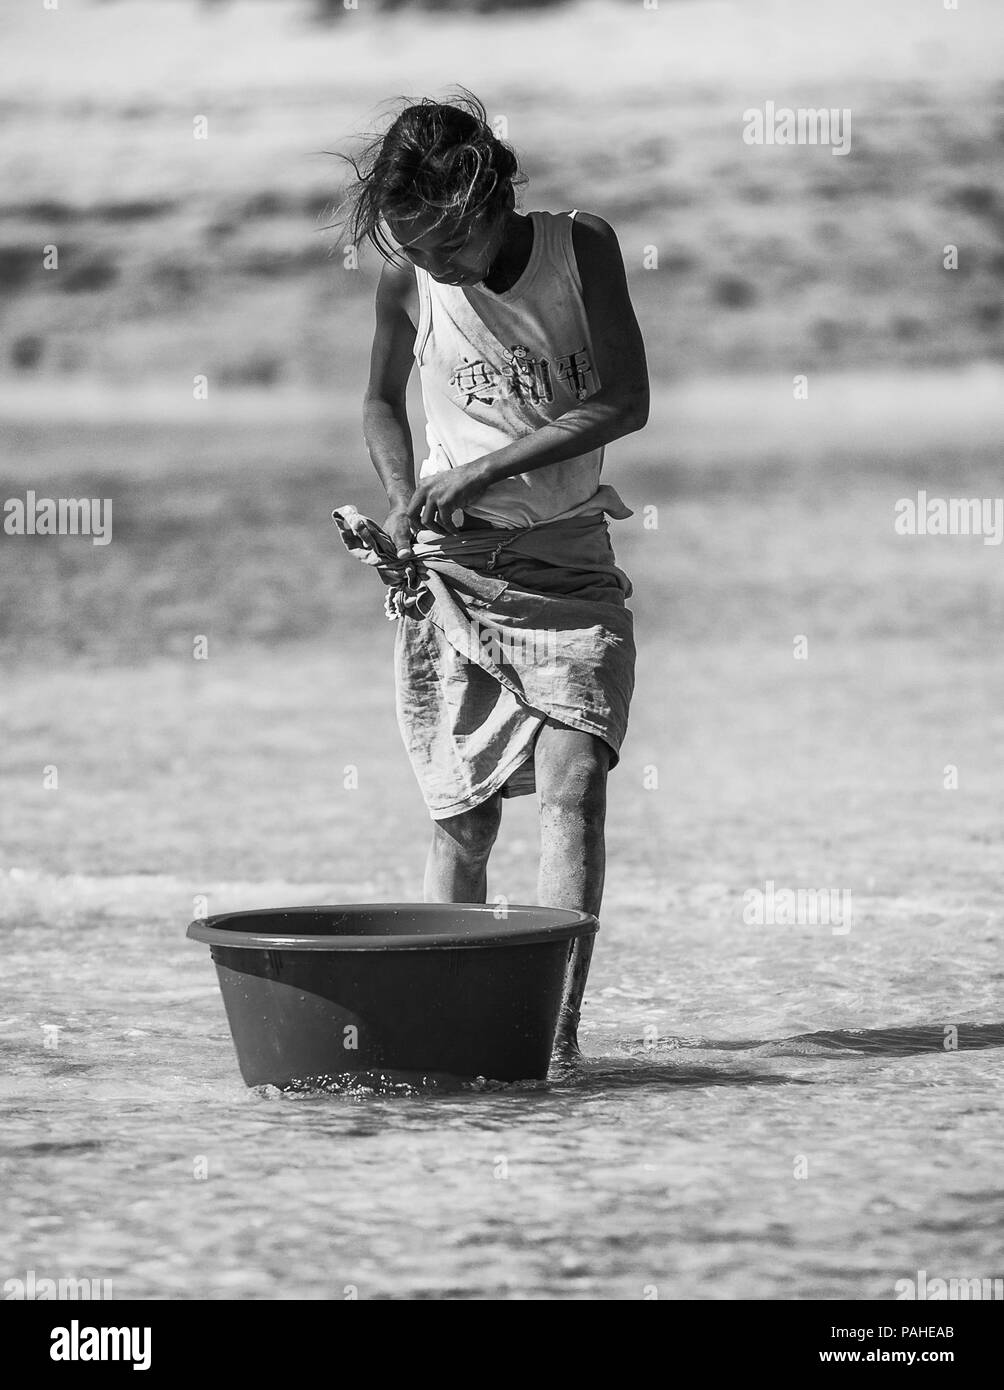 ANTANANARIVO, MADAGASCAR - JULY 3, 2011: Unidentified Madagascar beautiful girl with a basin to get water. People in Madagascar suffer of poverty due  Stock Photo